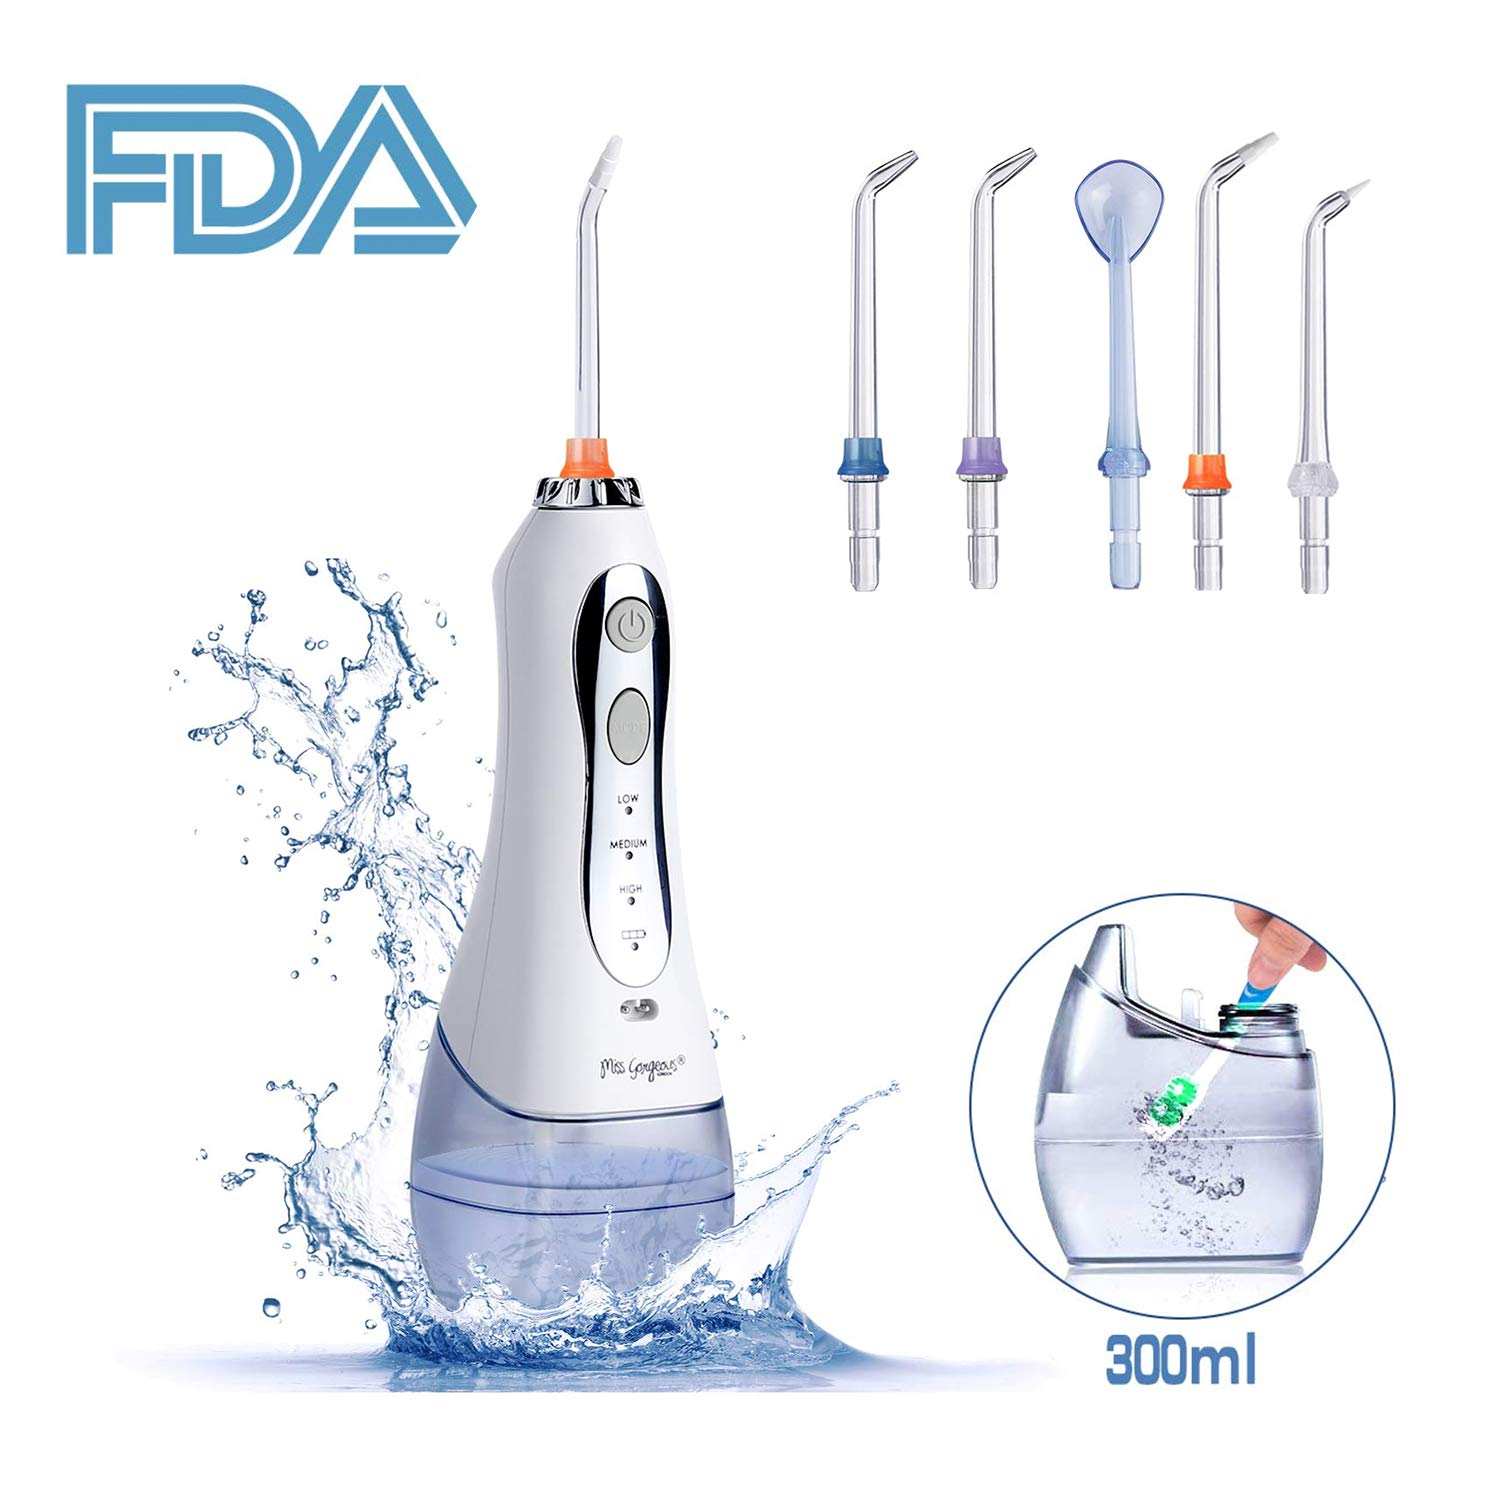 Cordless Water Flosser Teeth Cleaner - Miss Gorgeous Professional Dental Oral Irrigator with 300ml Water Tank Portable and Rechargeable IPX7 Waterproof 3 Mode USB Rechargable with 5 Jet Nozzles